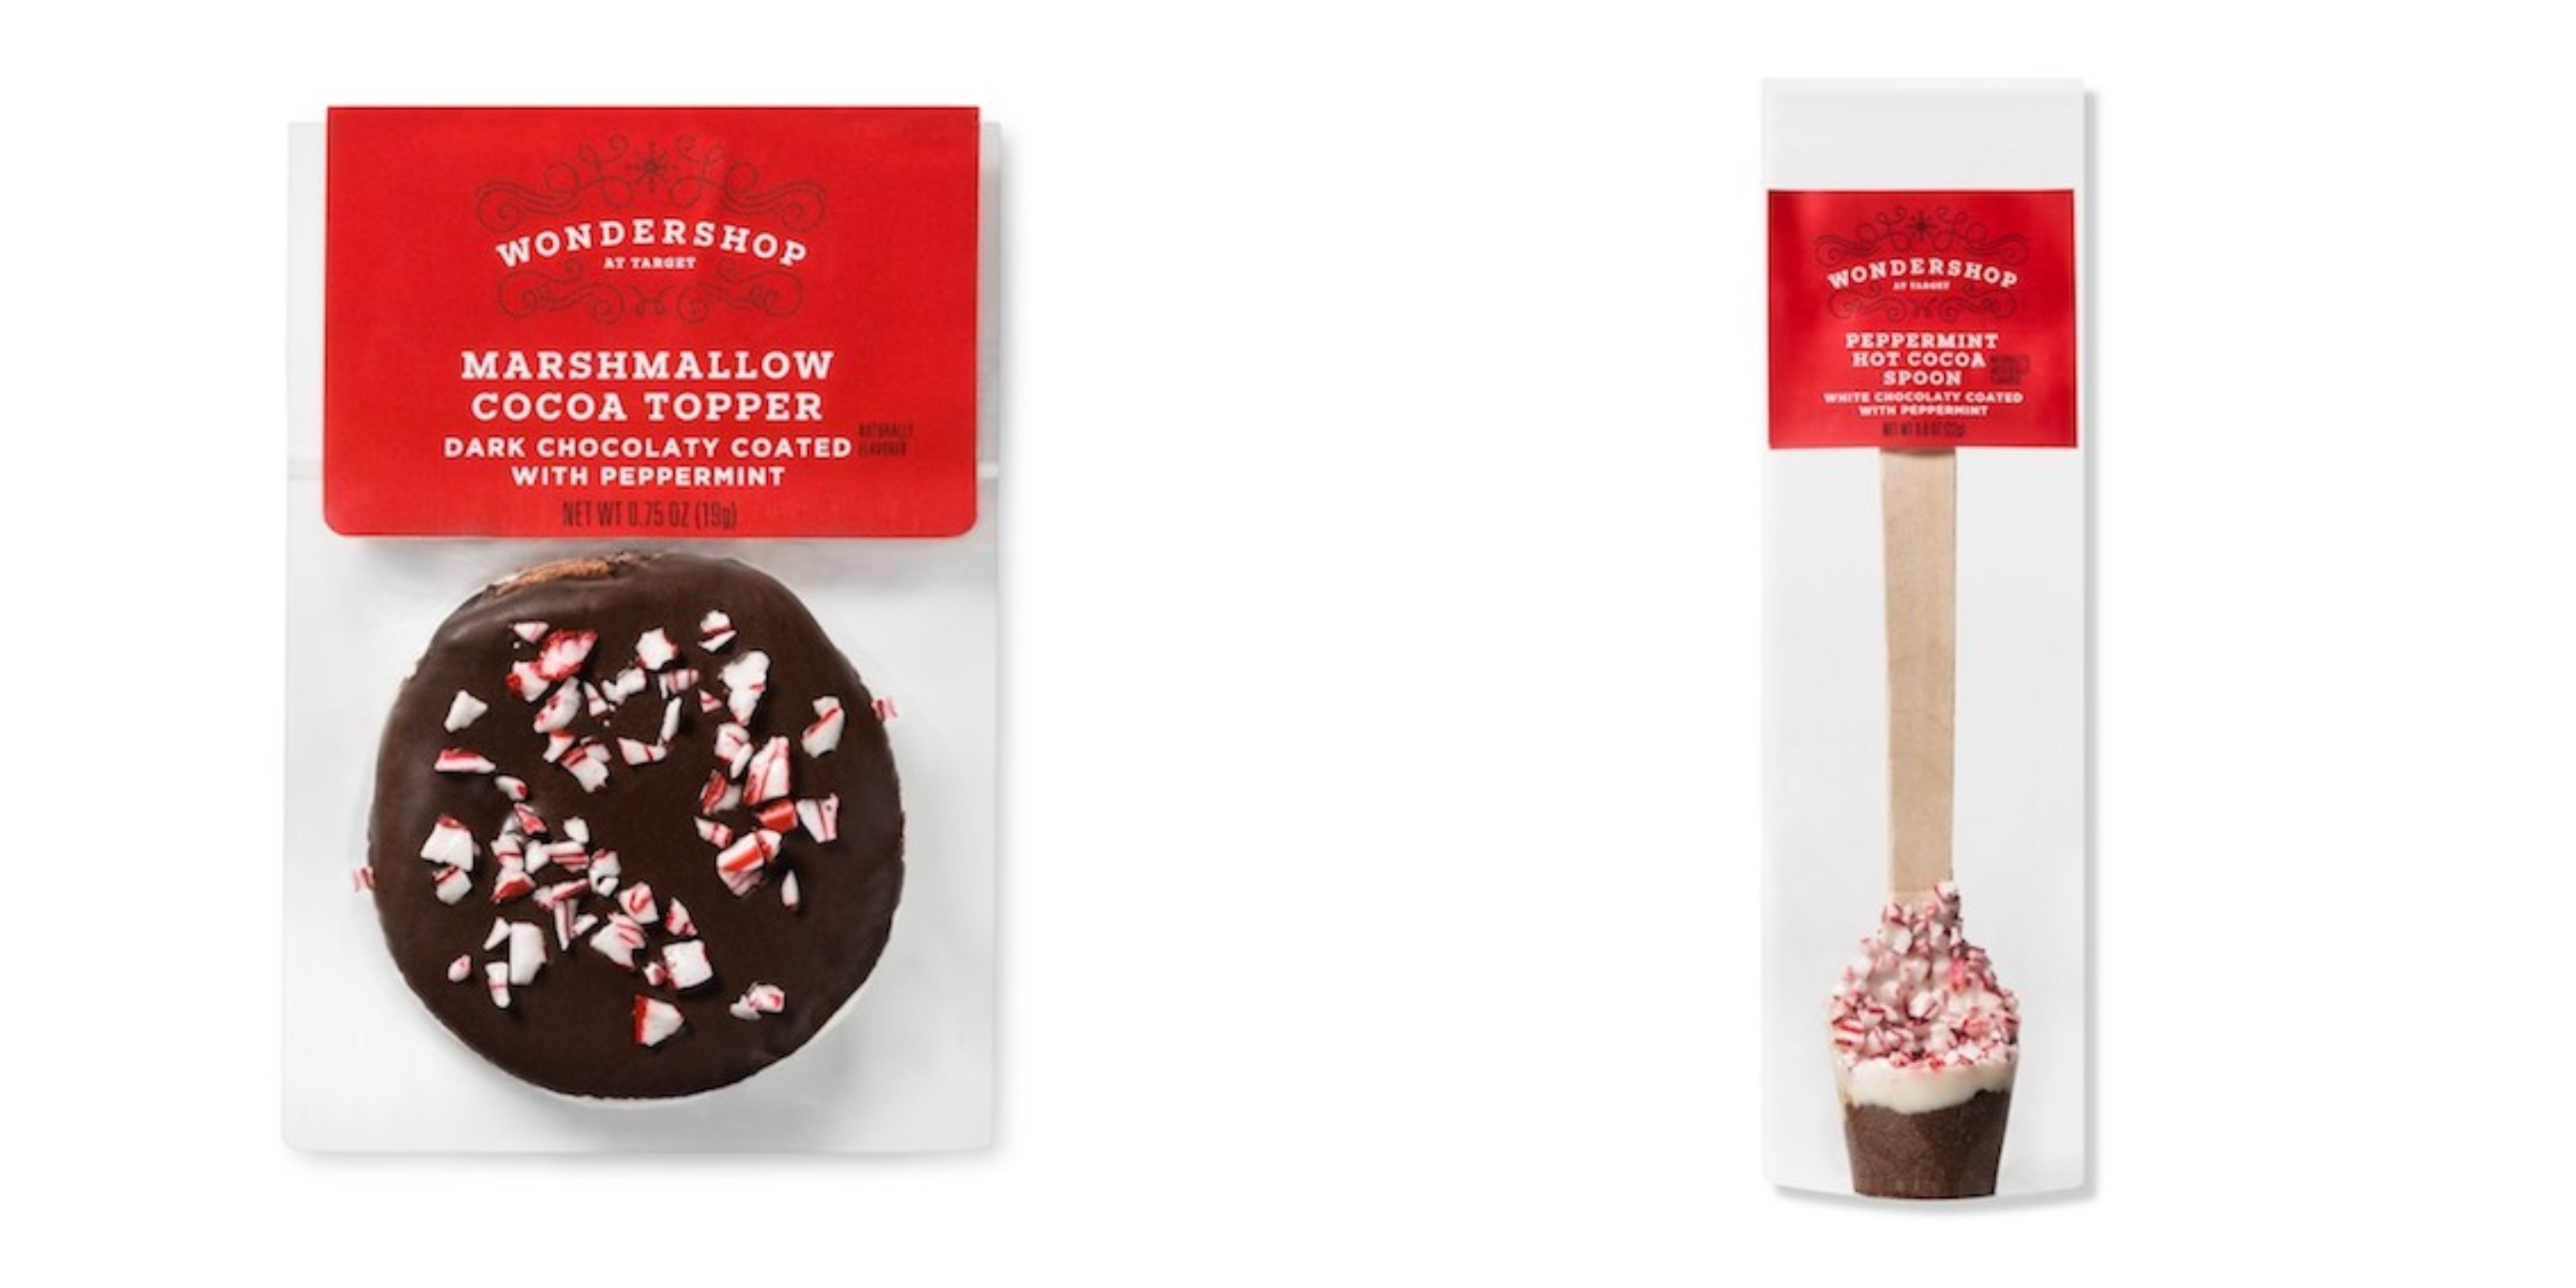 The Marshmallow cocoa topper and spoon in their festive packages